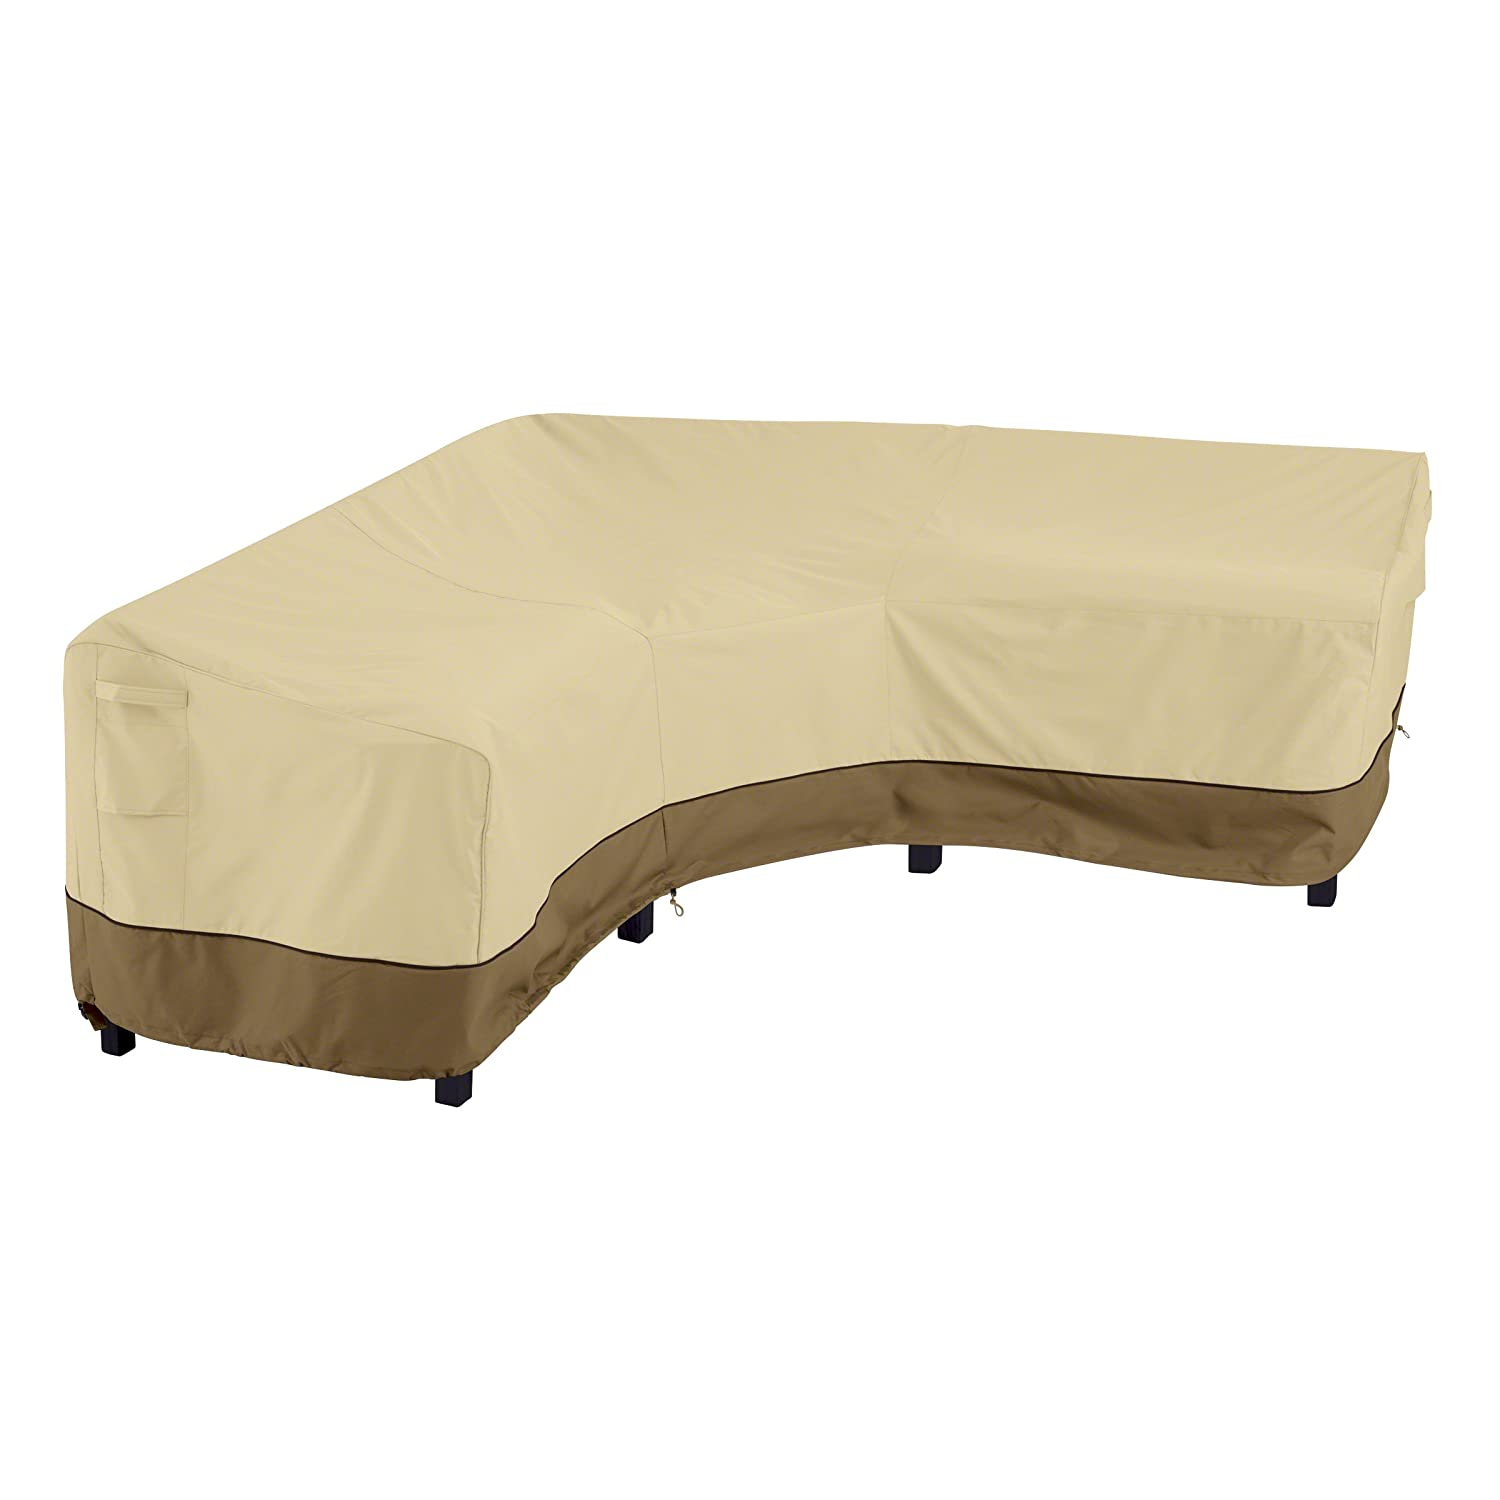 Classic Accessories Veranda V-Shaped Sectional Sofa Cover, Medium